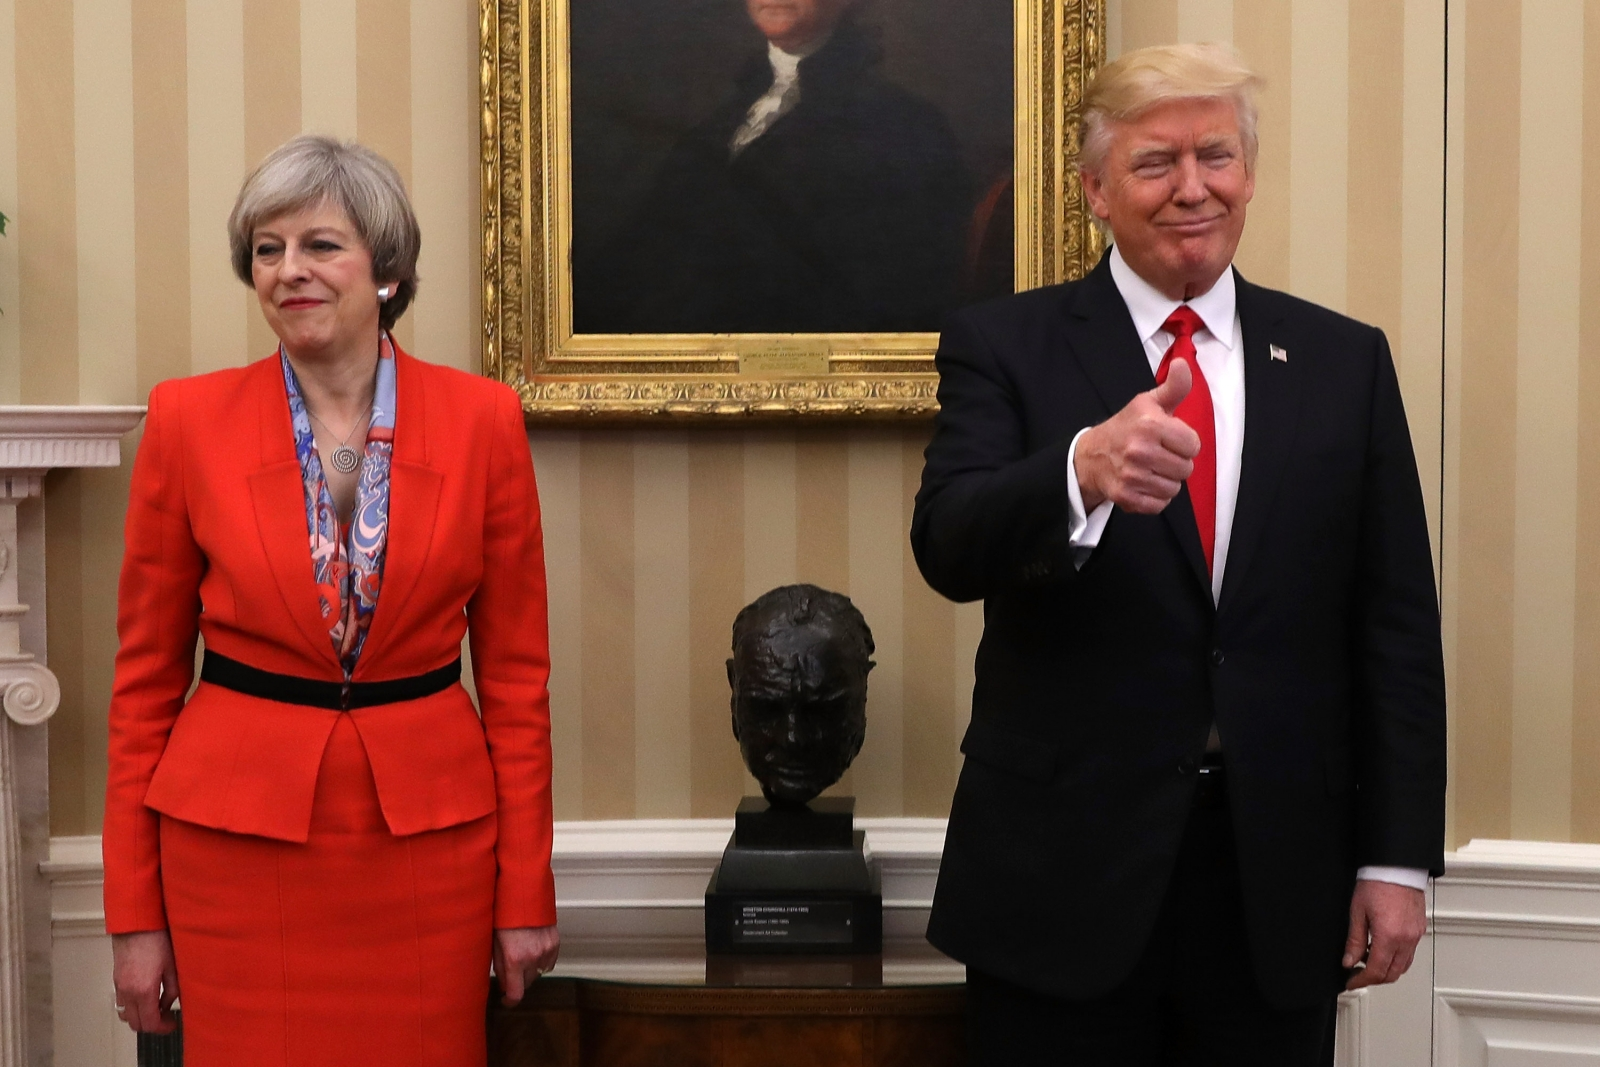 Donald Trump receives state visit invite by Theresa May ...